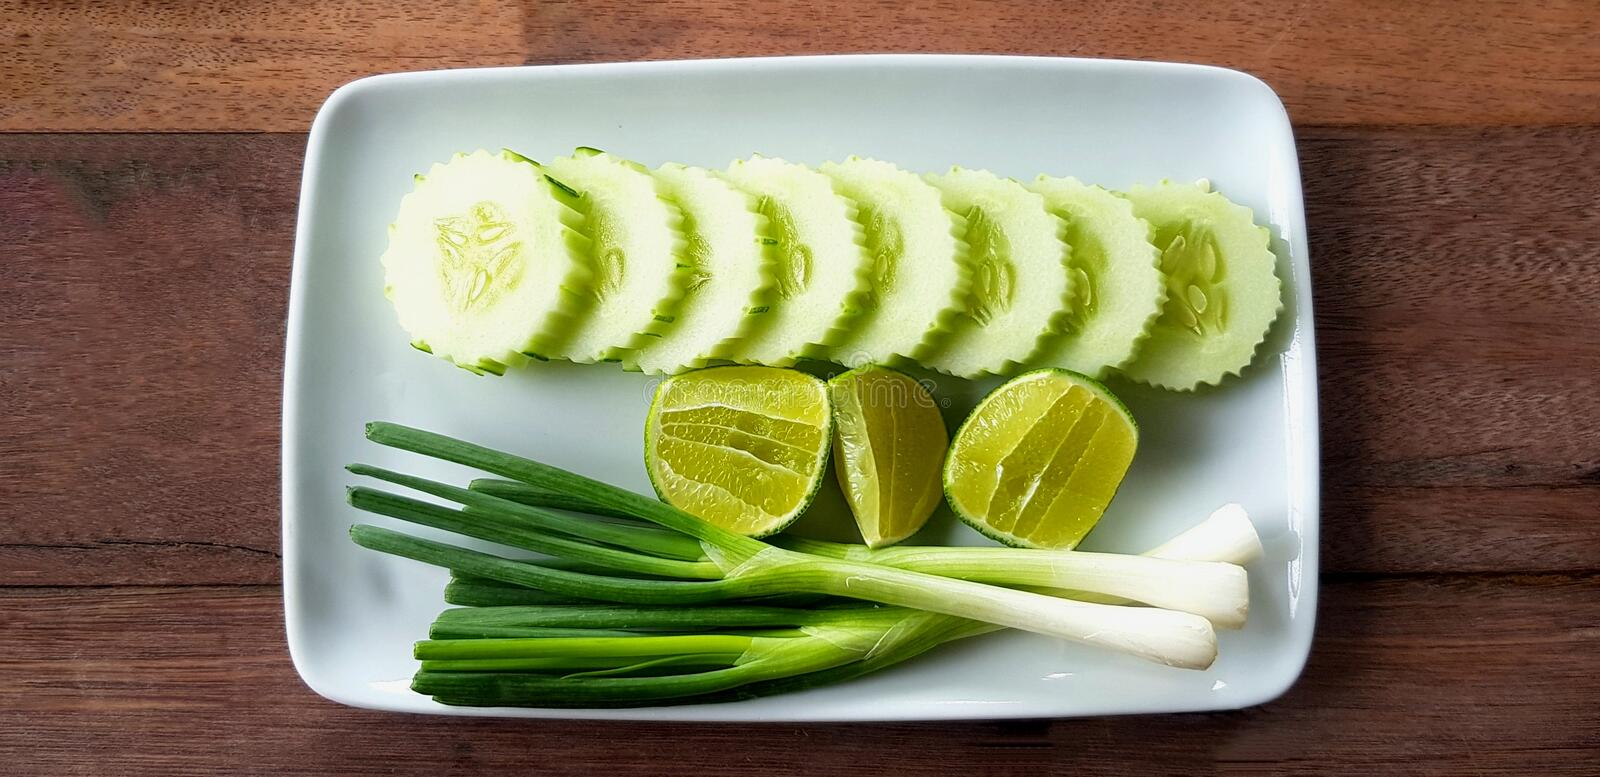 Top view of flat lay of fresh Scallion, sliced cucumber and lime or lemon in white plate on wooden table. Organic vegetable food and Harvest of agriculture royalty free stock images